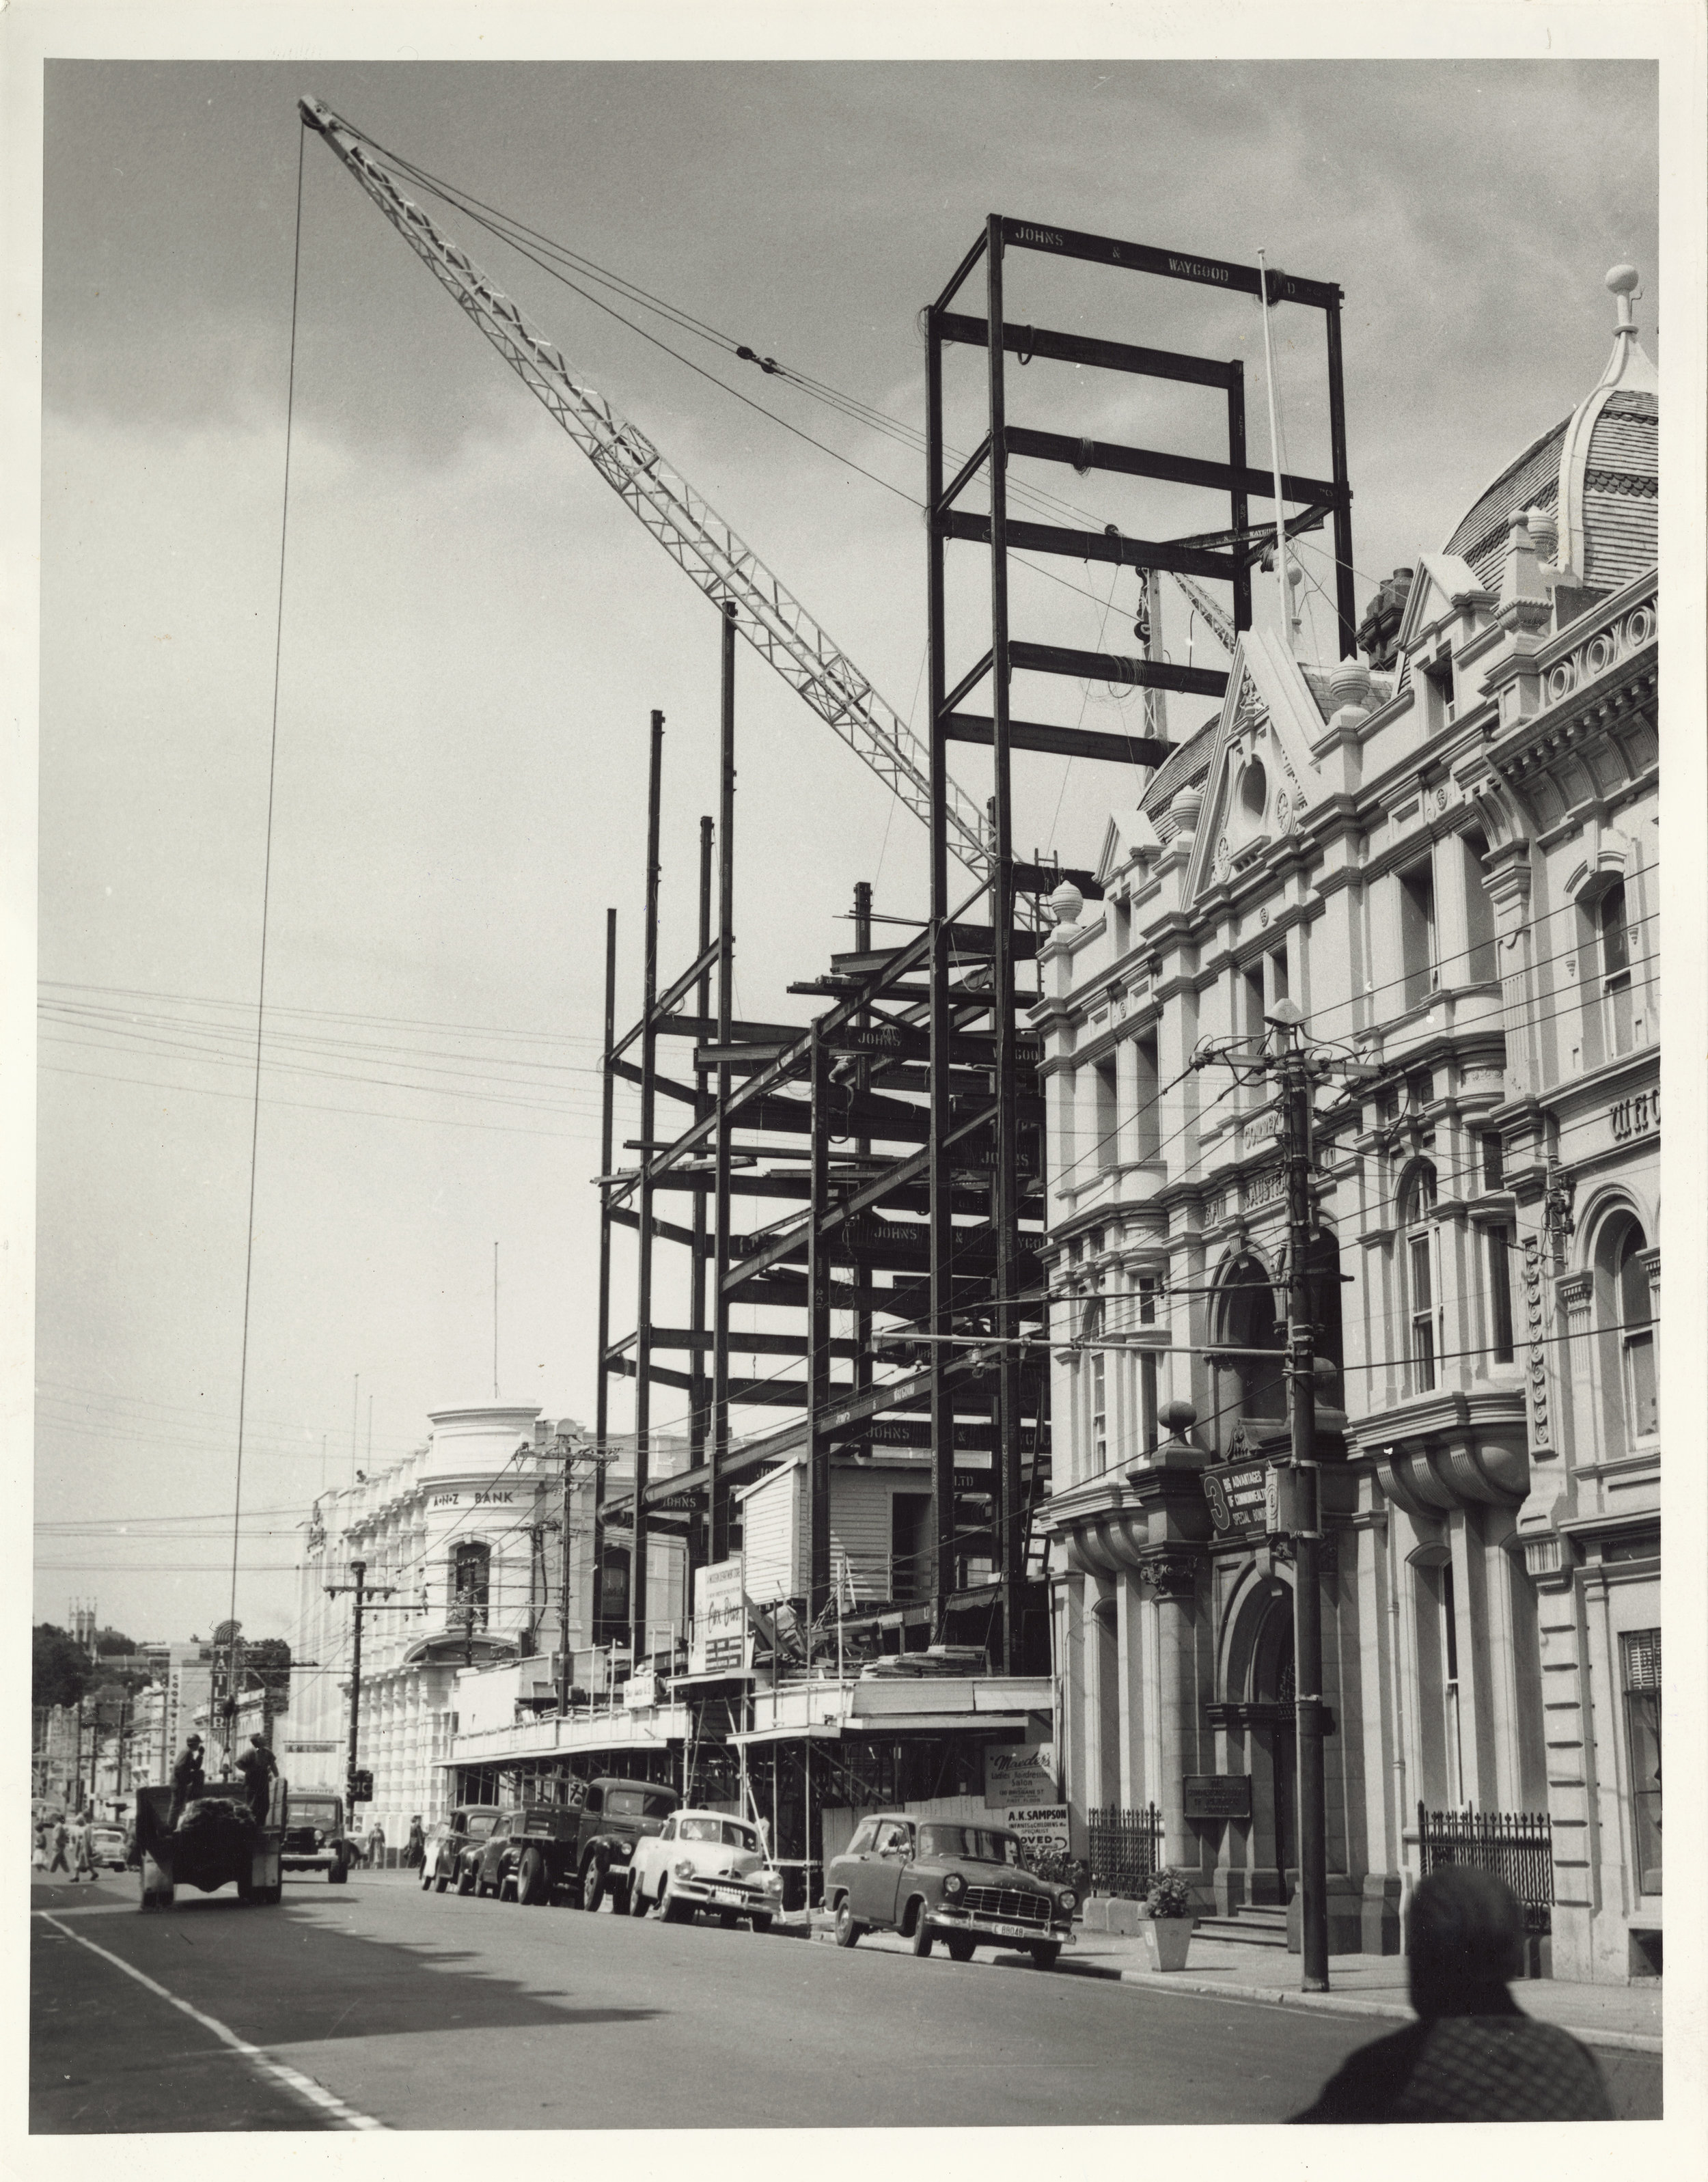 View of the Cox Brothers (then Myer) department store under construction. Source: Tasmanian Archive and Heritage Office: From the PH30 series